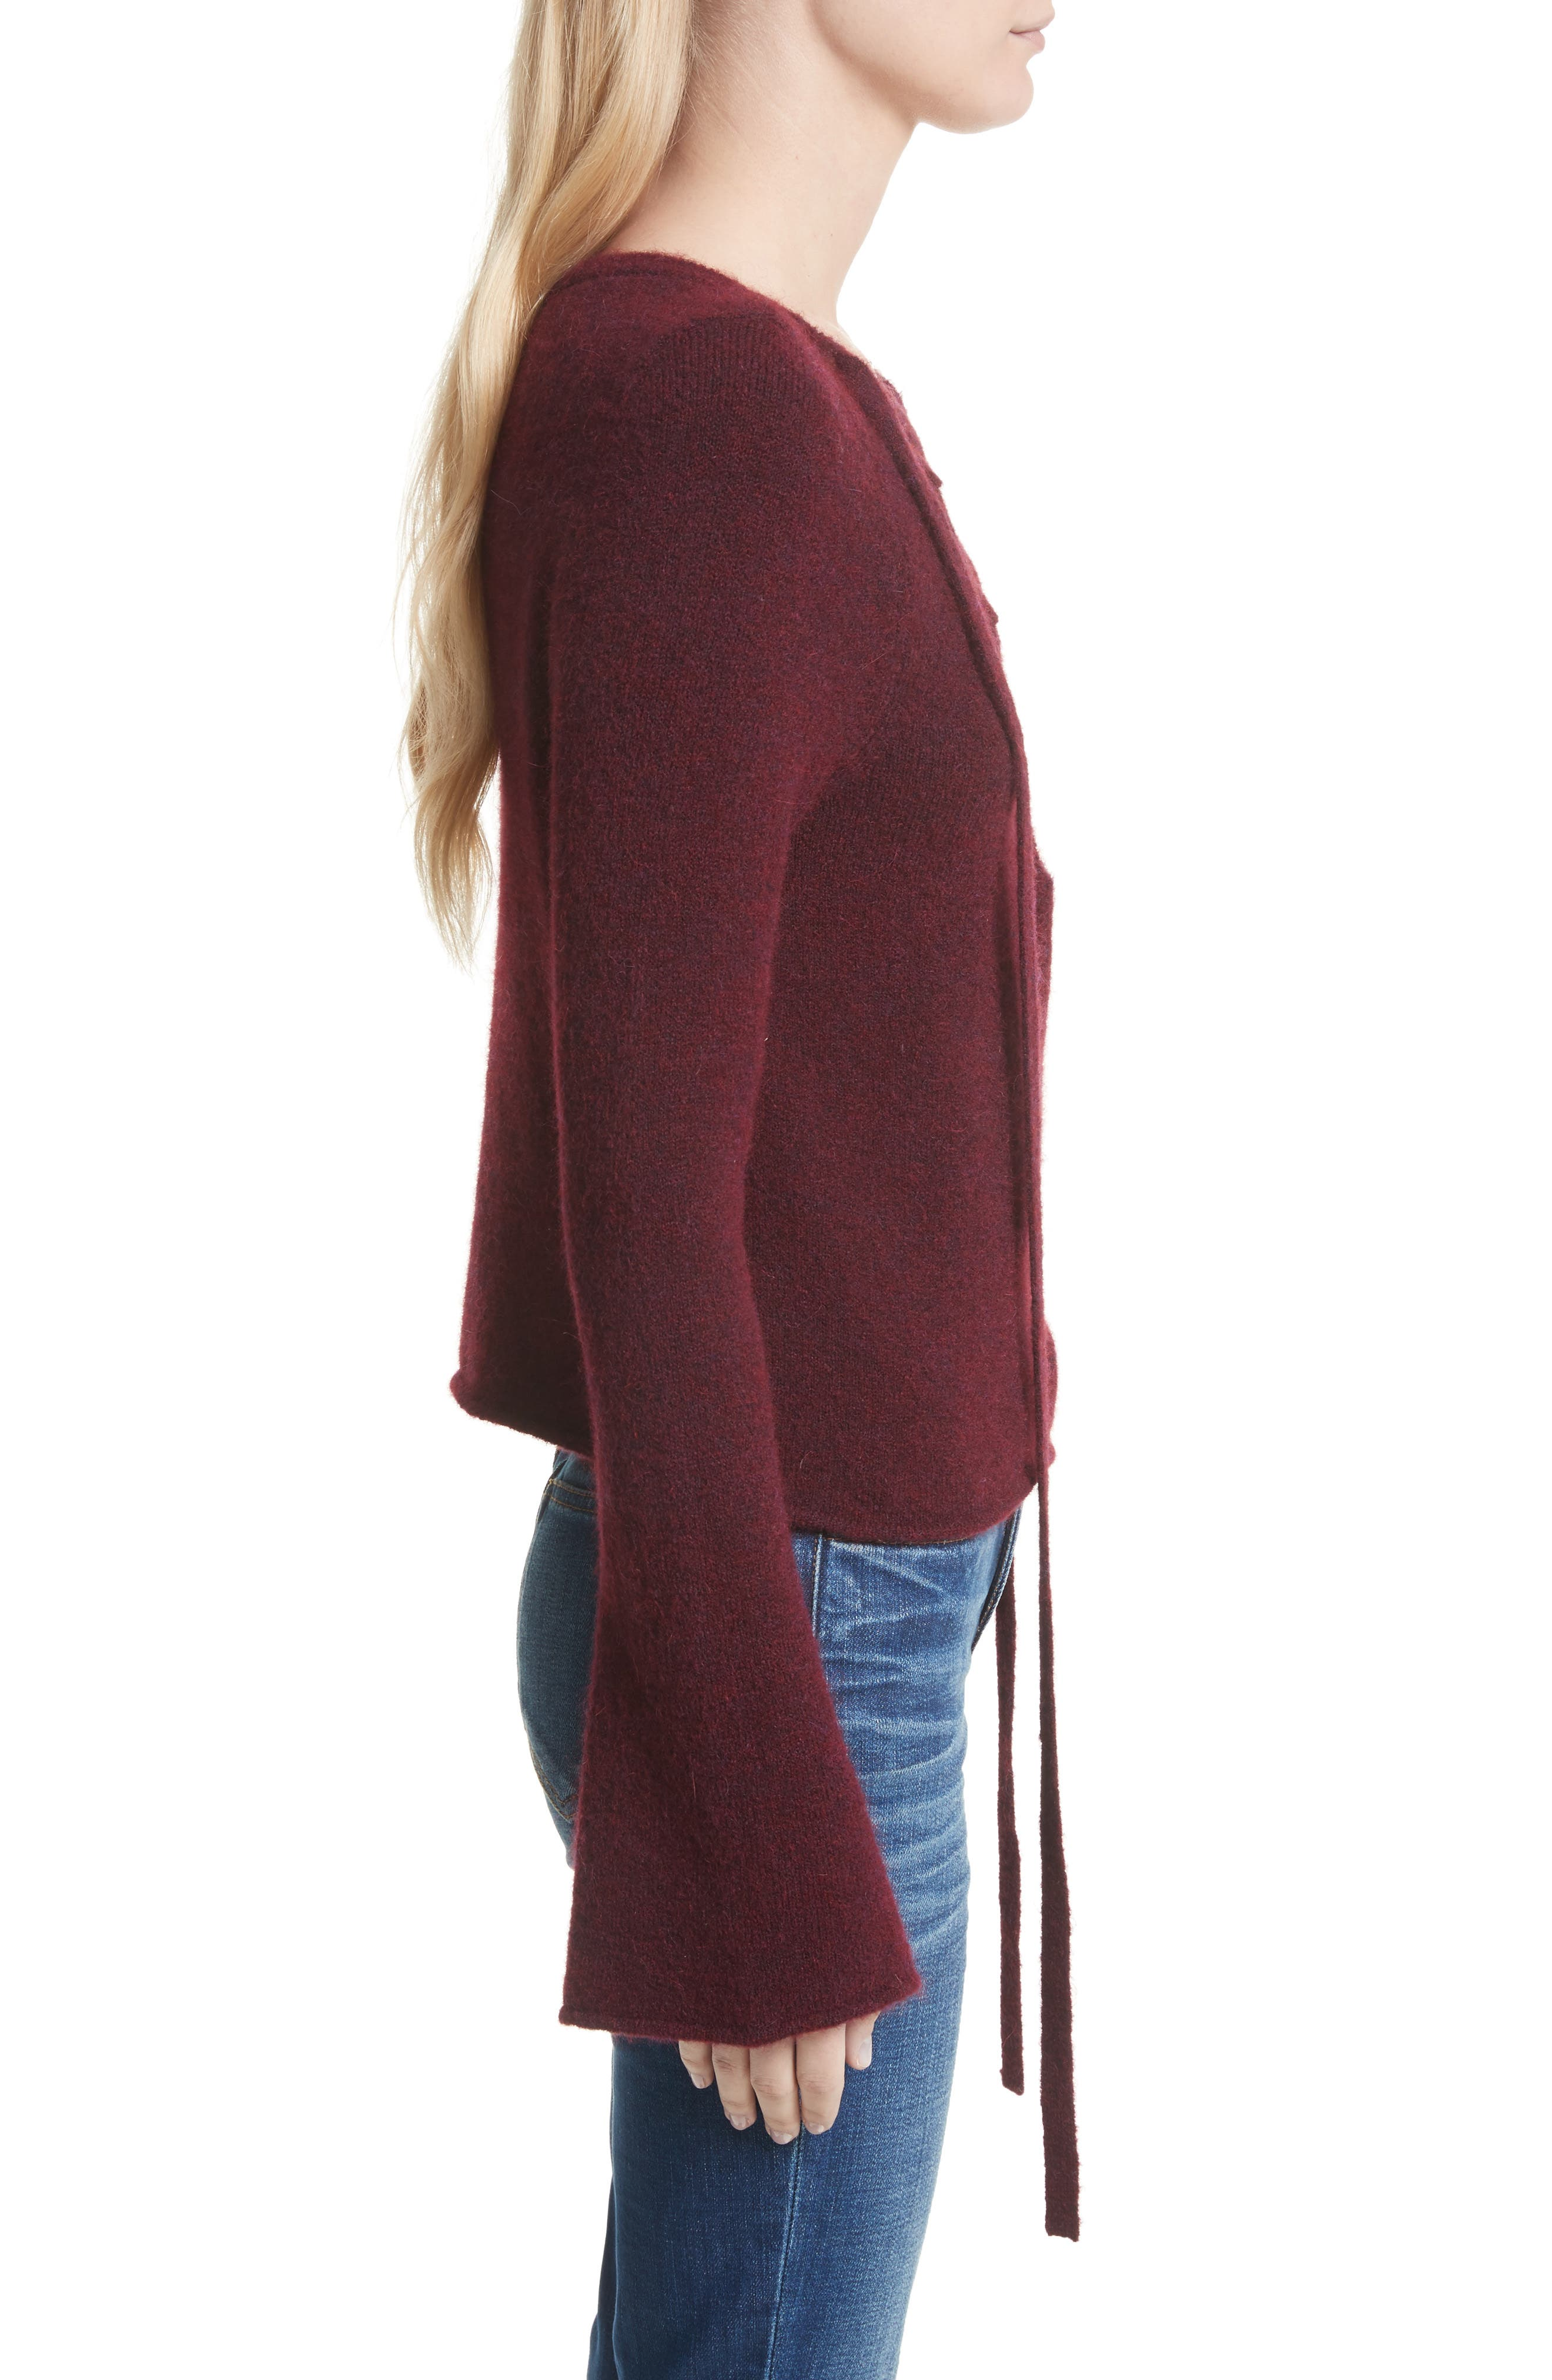 Candela Lace-Up Sweater,                             Alternate thumbnail 3, color,                             600